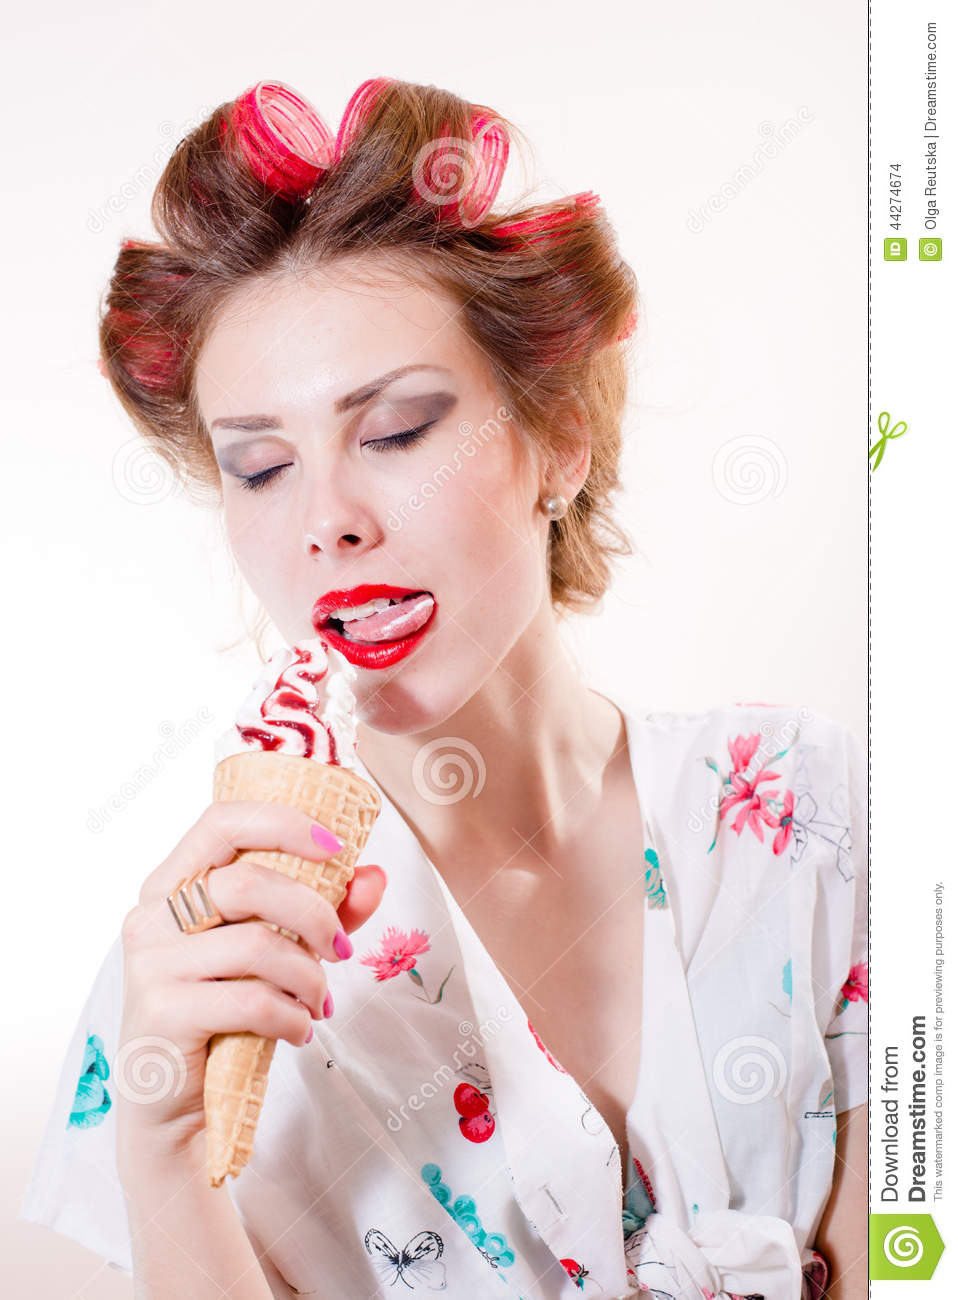 Licking dessert: beautiful young woman eating ice cream cone eyes closed isolated over white copy space background